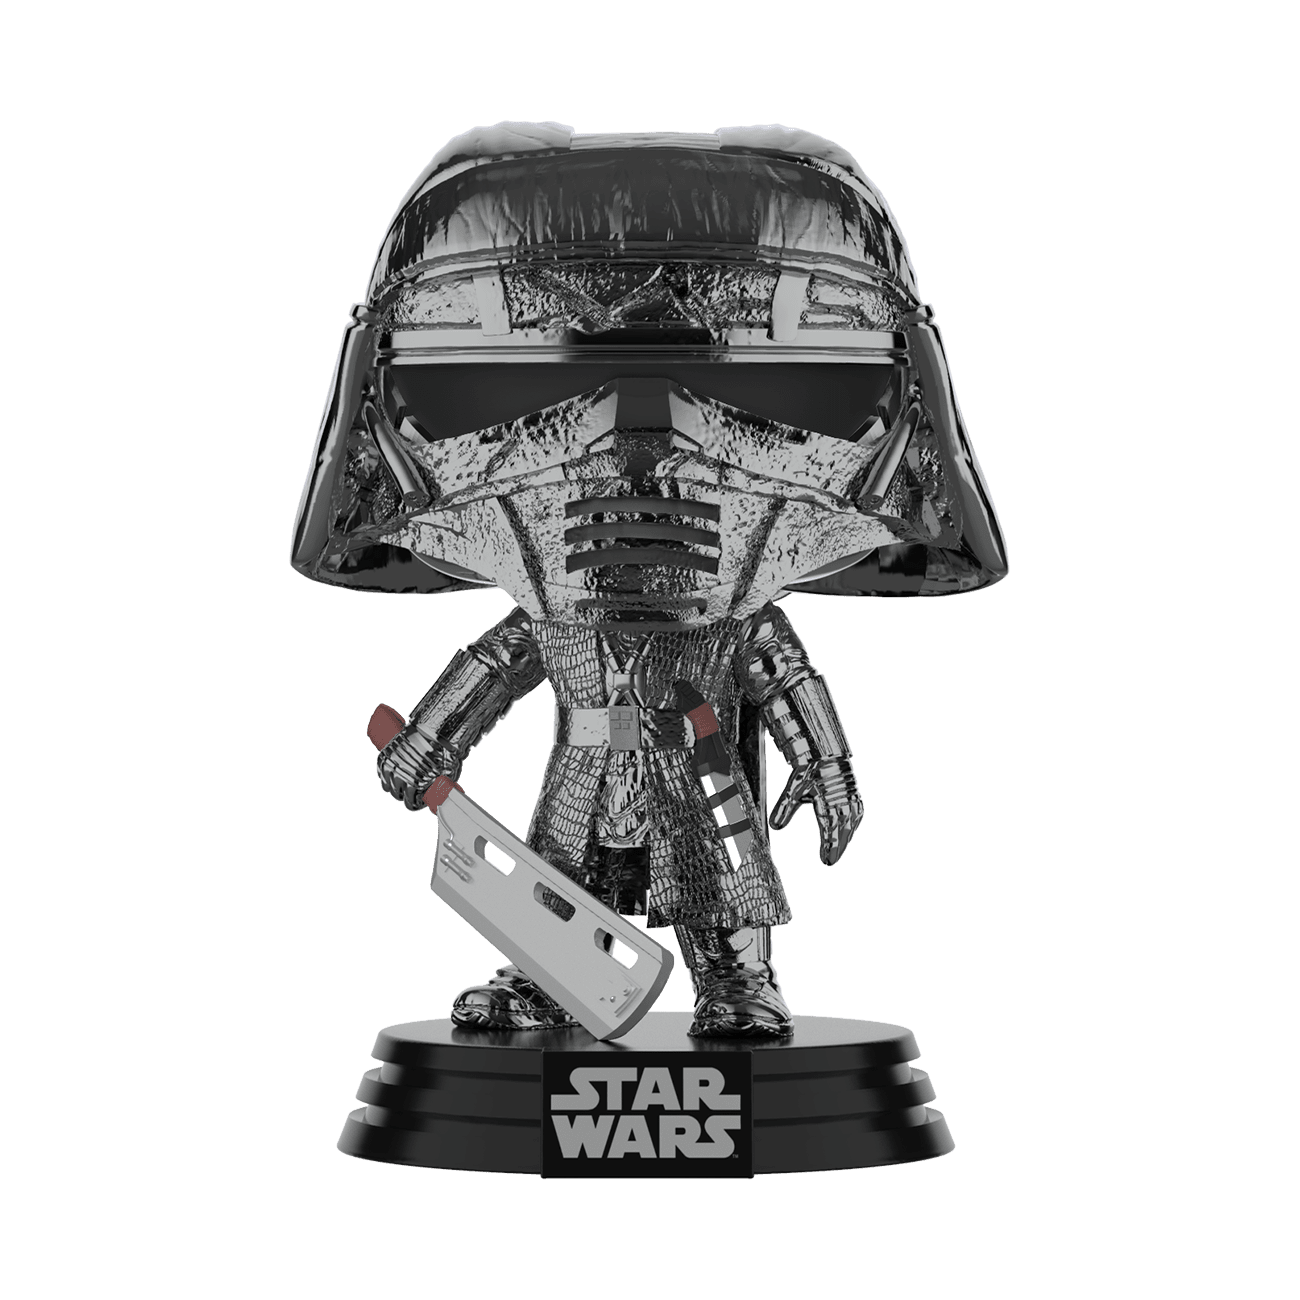 Star Wars: The Rise of Skywalker Hematite Chrome Knight of Ren Blade Pop! Vinyl Figure